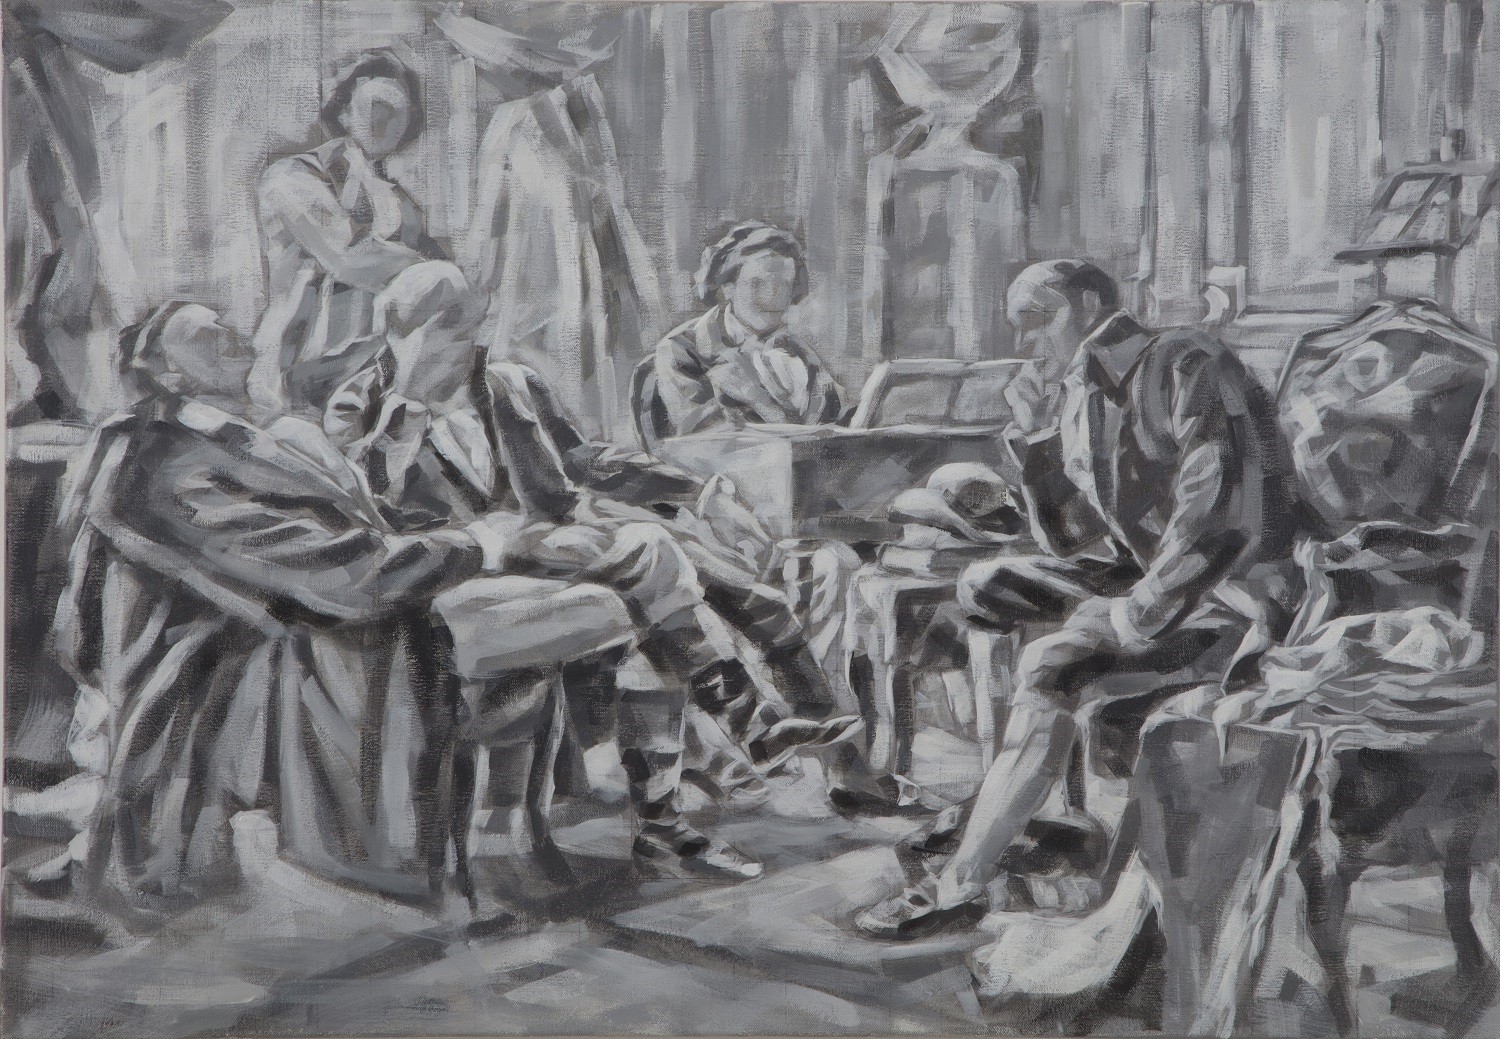 """Beethoven&Friends"", Adaption nach Anton Graeffle, Öl auf Leinwand, 70x100, 2019"